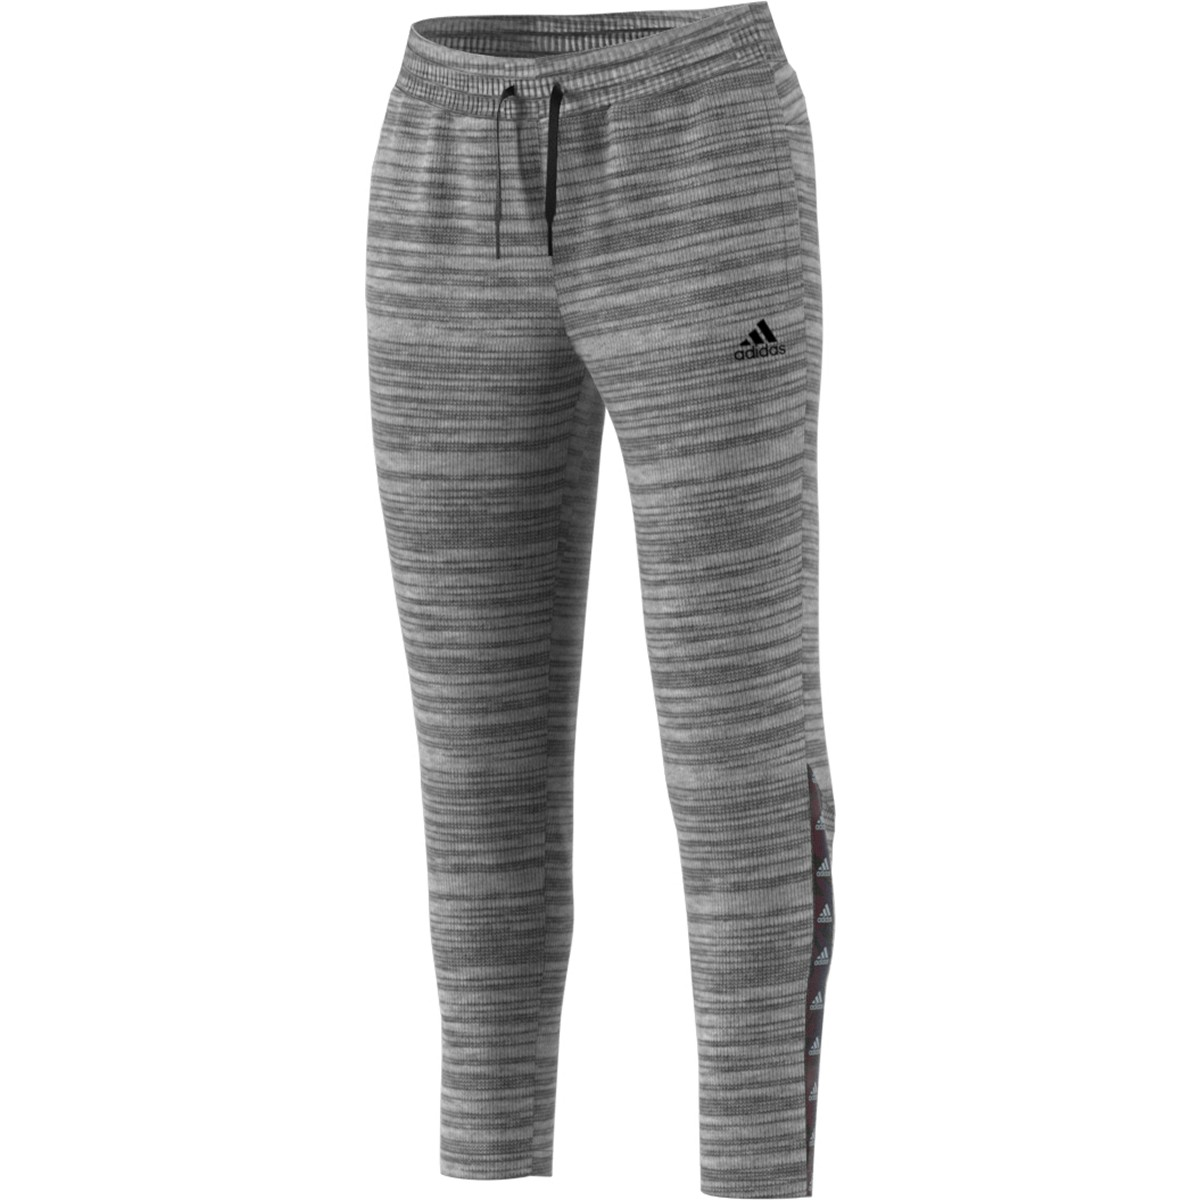 Adidas Essential Pant Womens GY